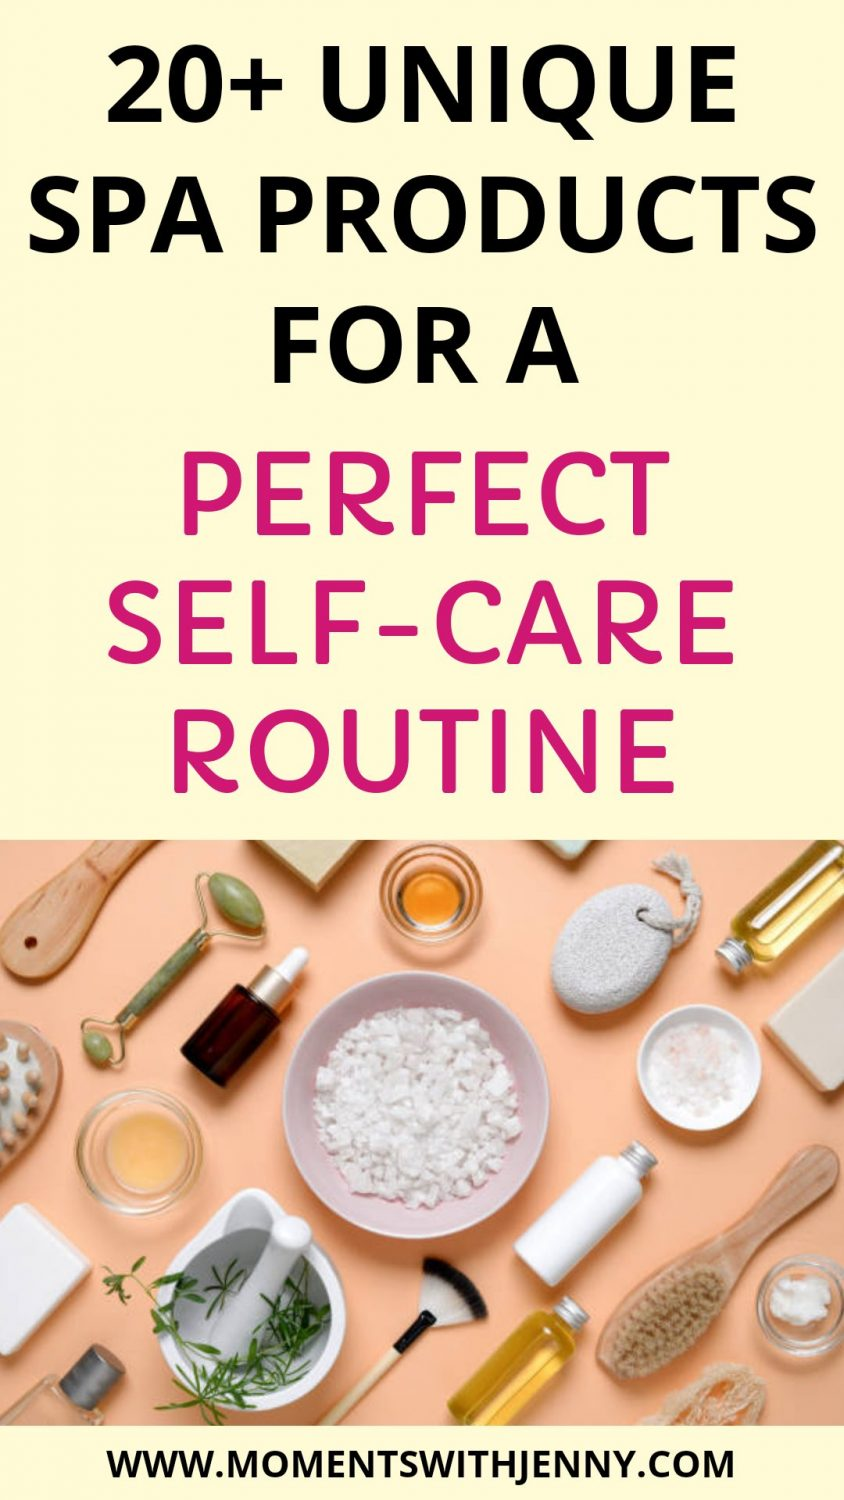 Unique spa products for a perfect self-care routine